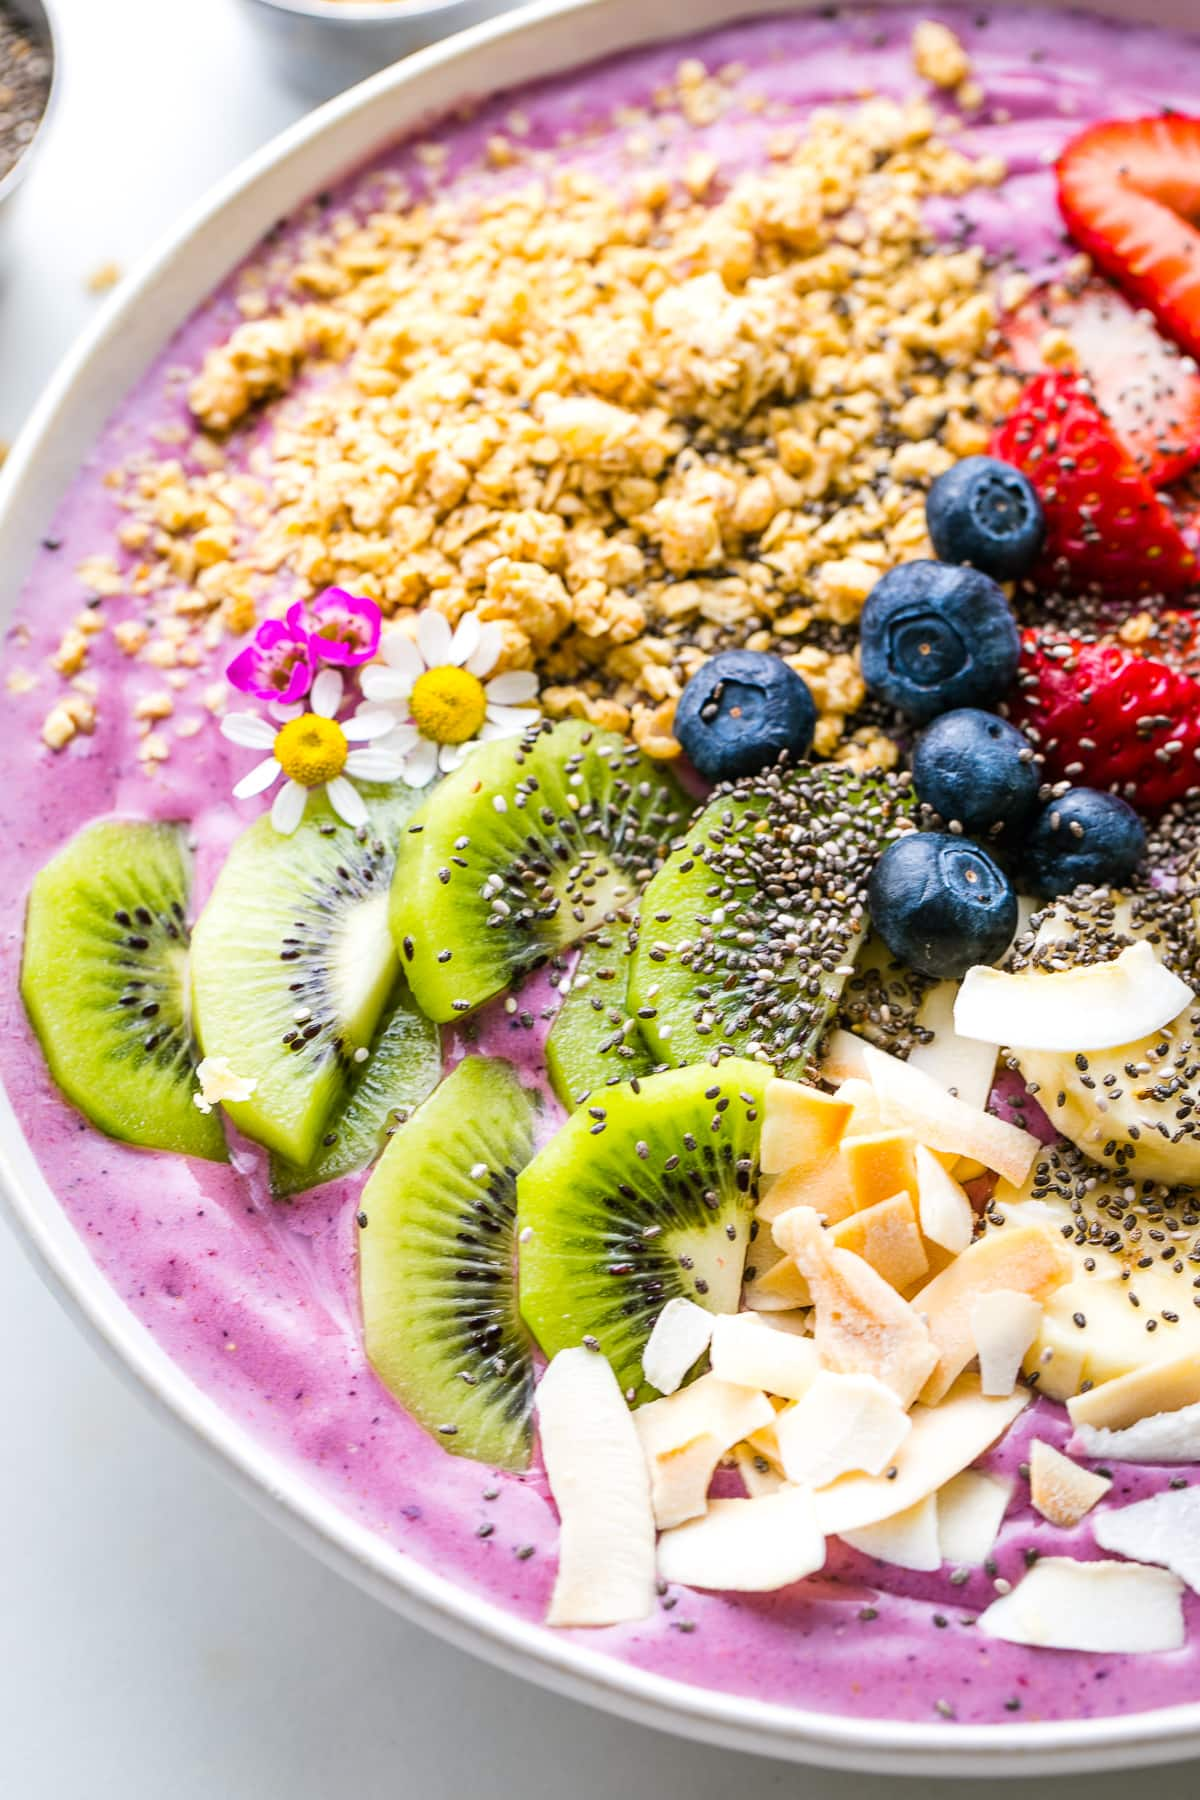 side angle view of healthy smoothie bowl with variety of toppings and items surrounding.